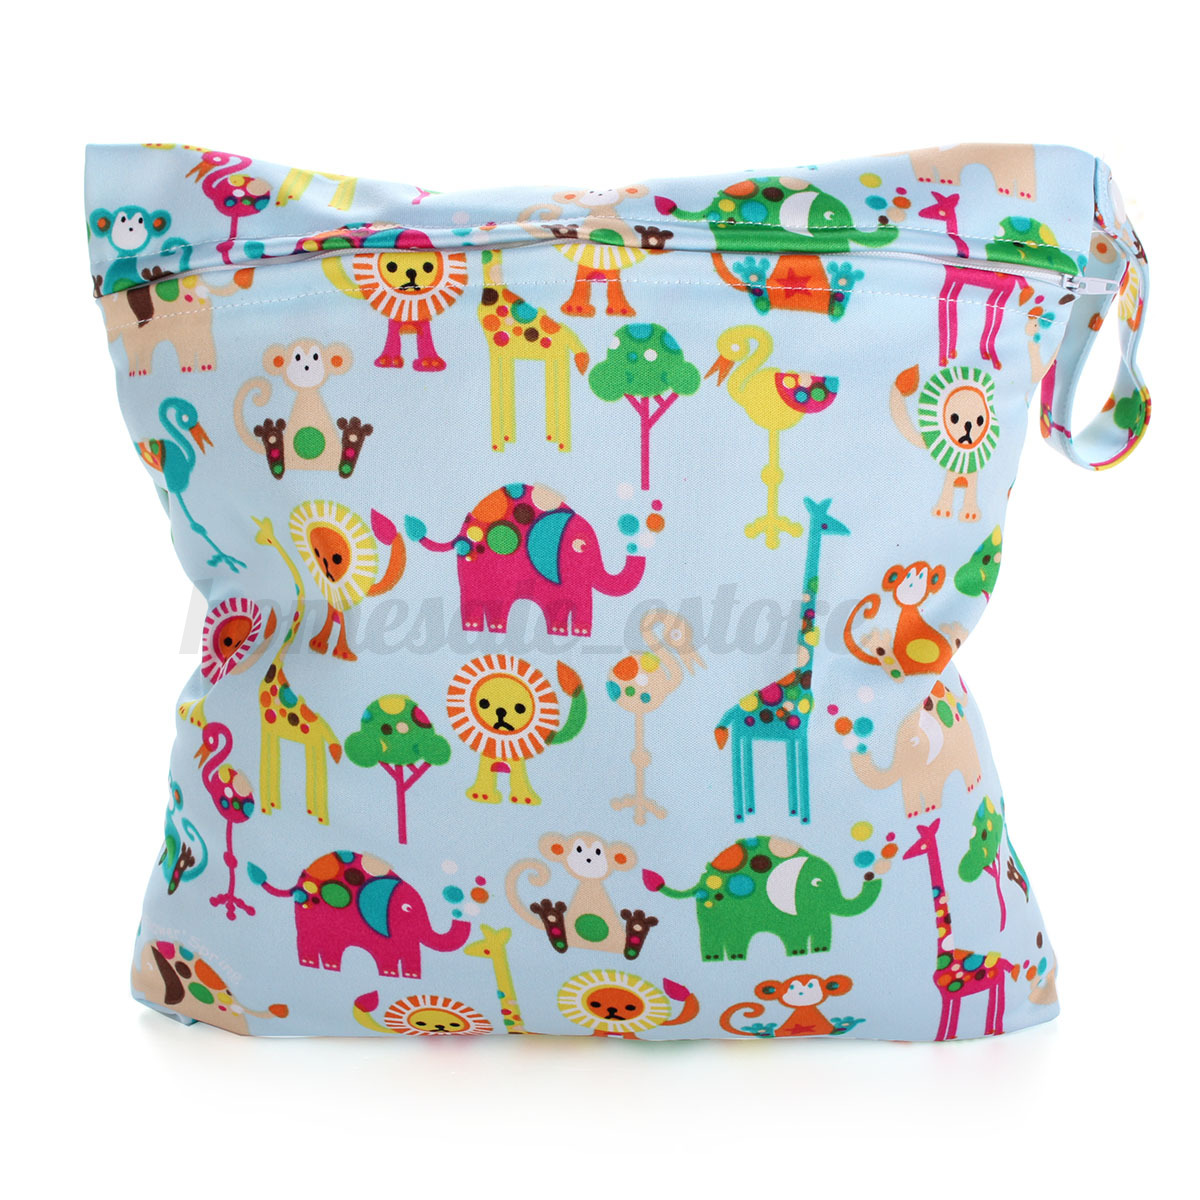 Kids Diaper Bag : Waterproof zipper baby kids cloth diaper bag nappy wet dry